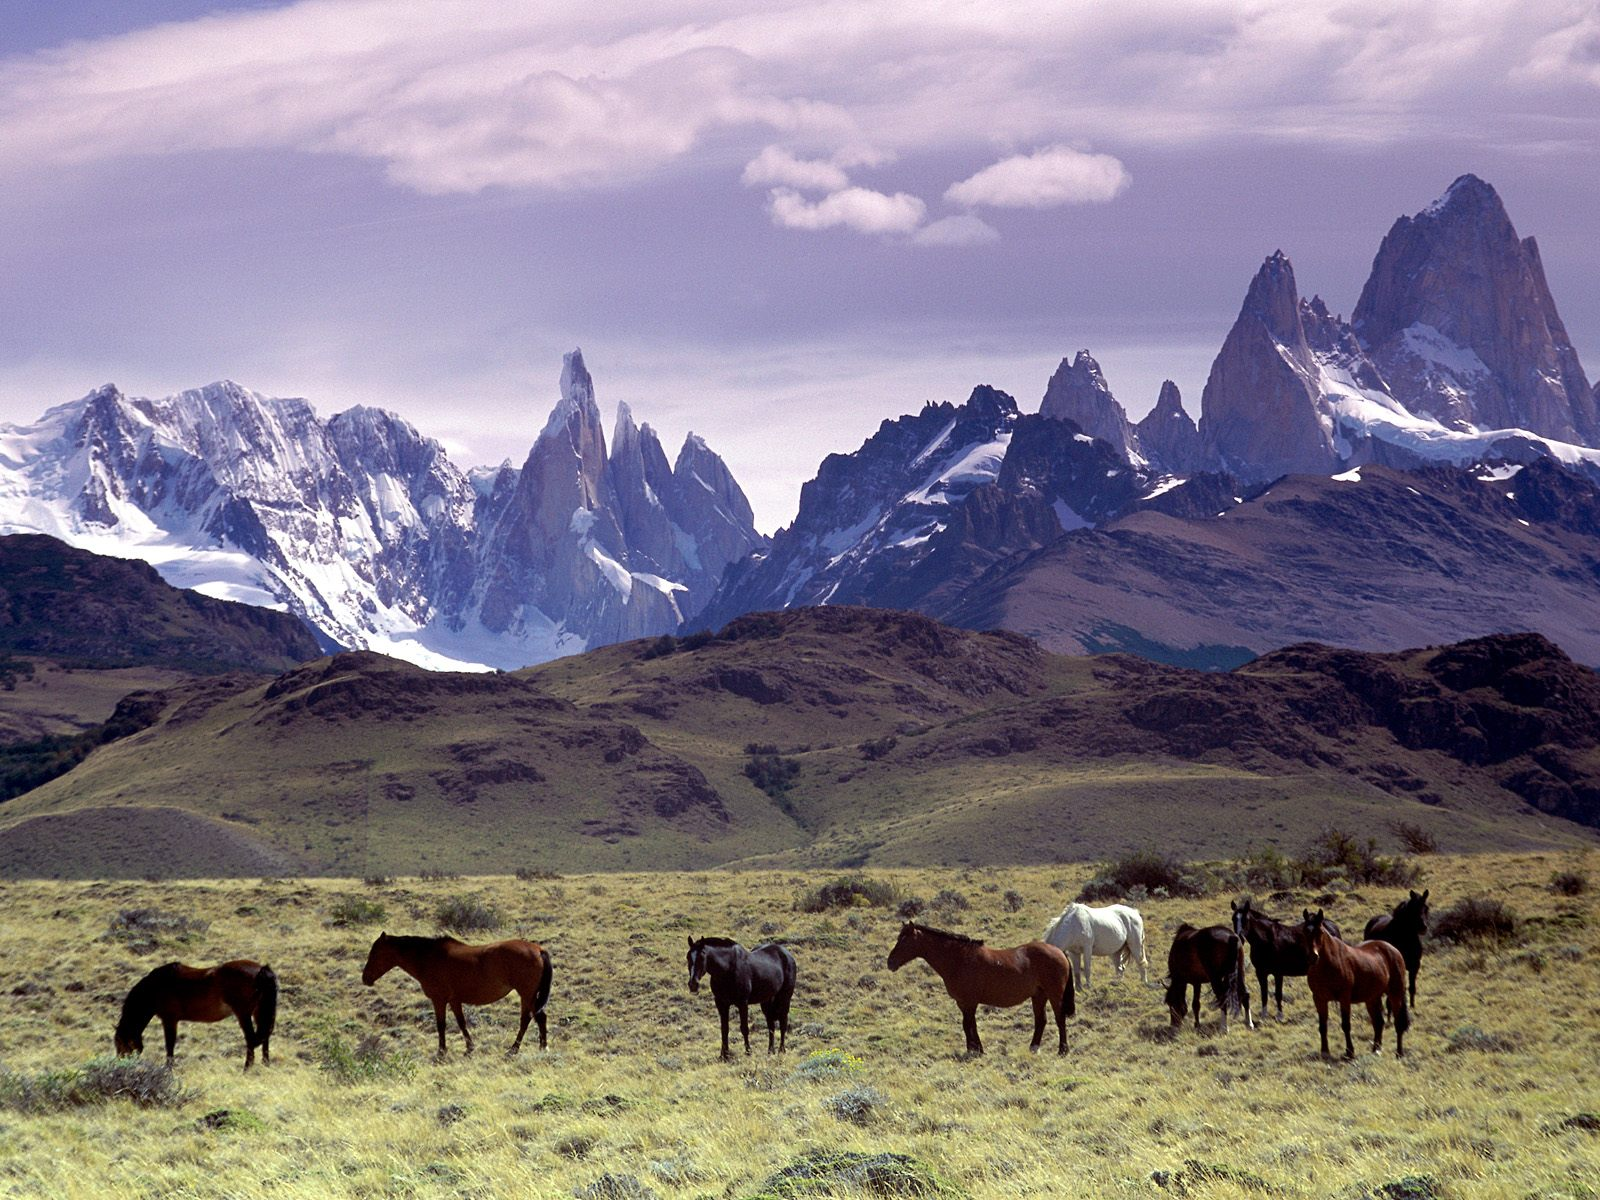 wild_andes_mountains_argentina_horse.jpg